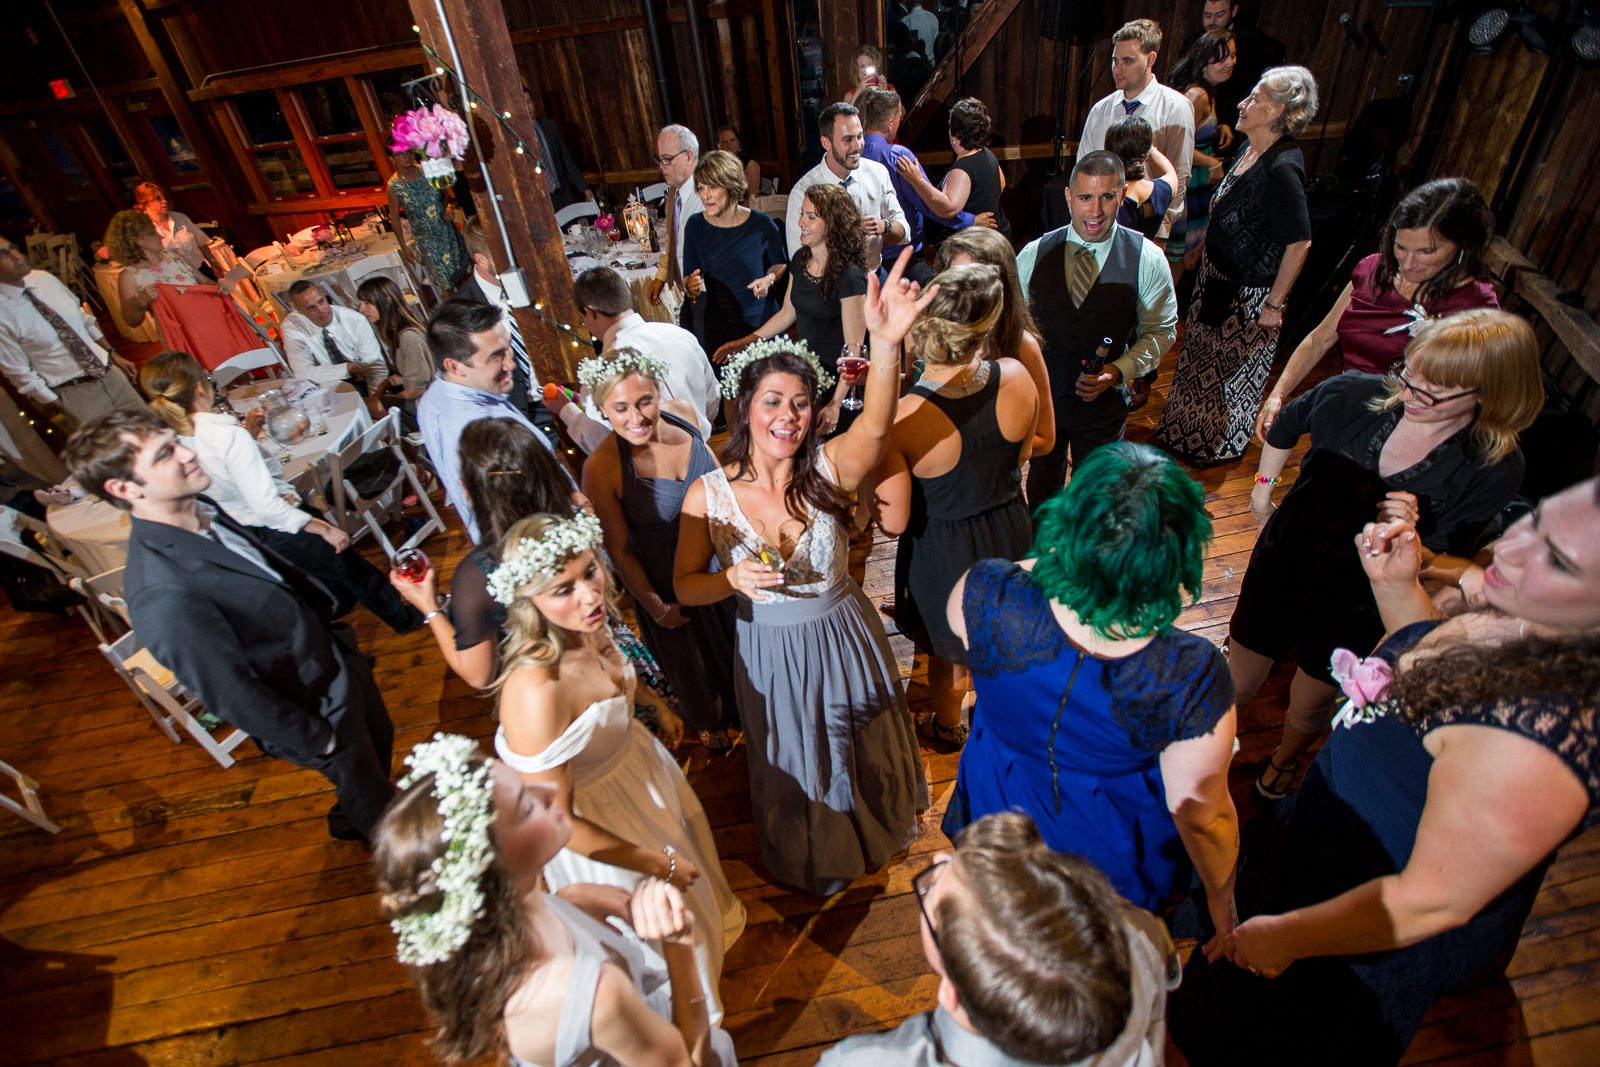 Four_Wings_Photography_Wedding_Red_Barn_at_Hampshire_College-52.jpg